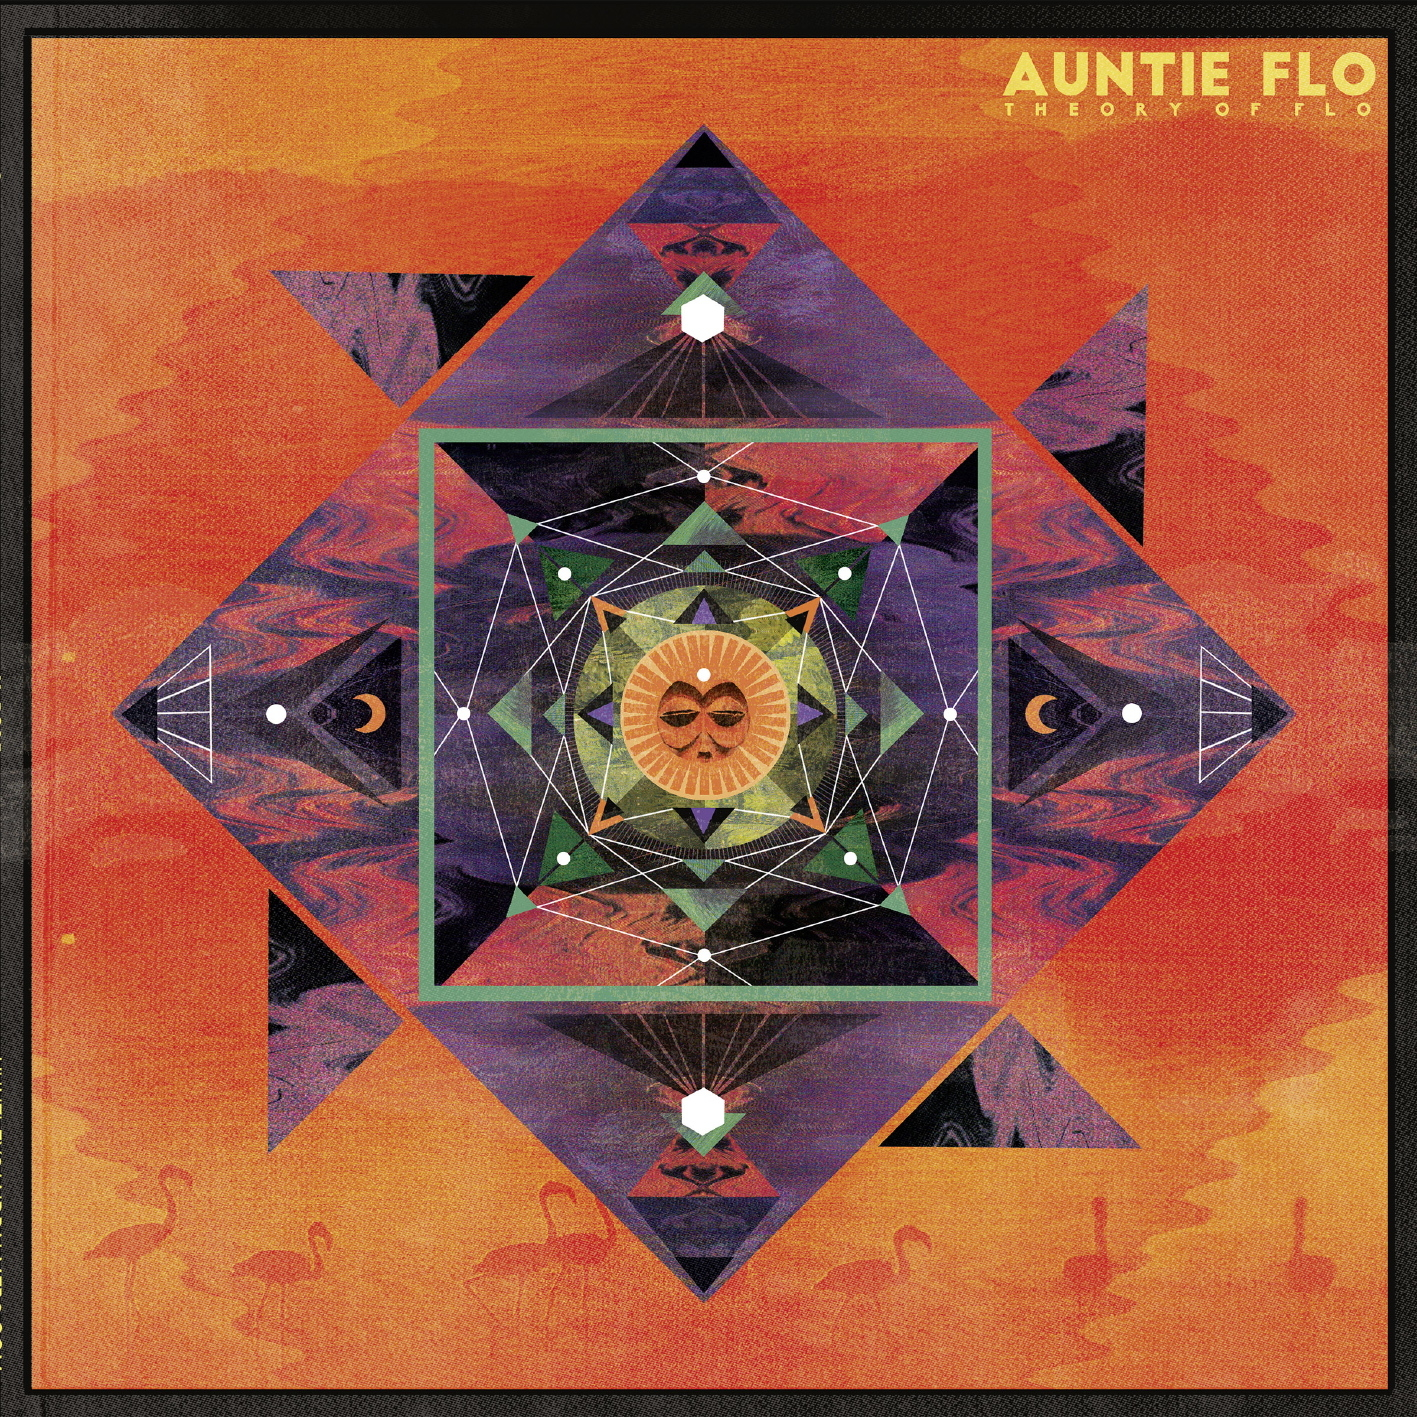 Auntie Flo/THEORY OF FLO DLP